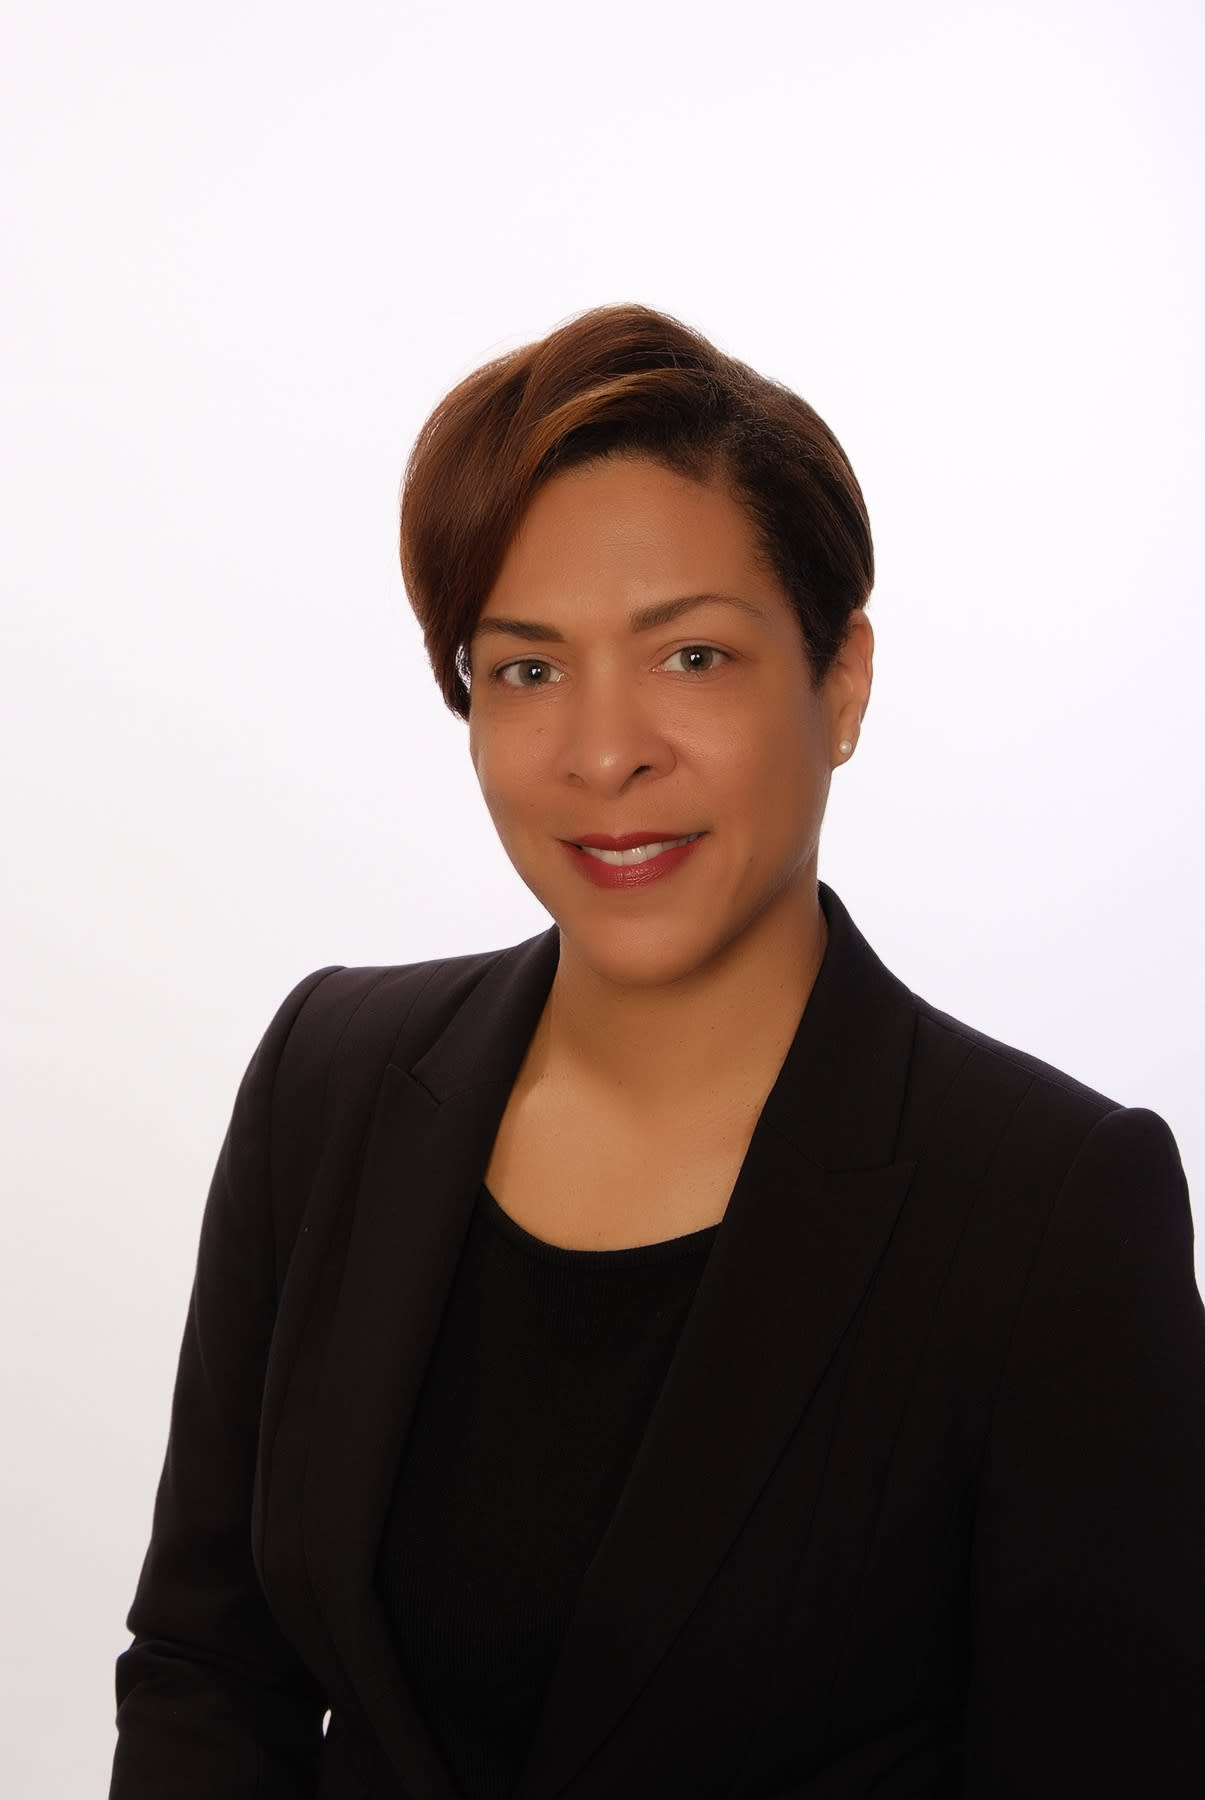 ABIR Welcomes Bermudian Suzanne Williams as Director of Policy & Regulation; Thanks Leila Madeiros for Her Service